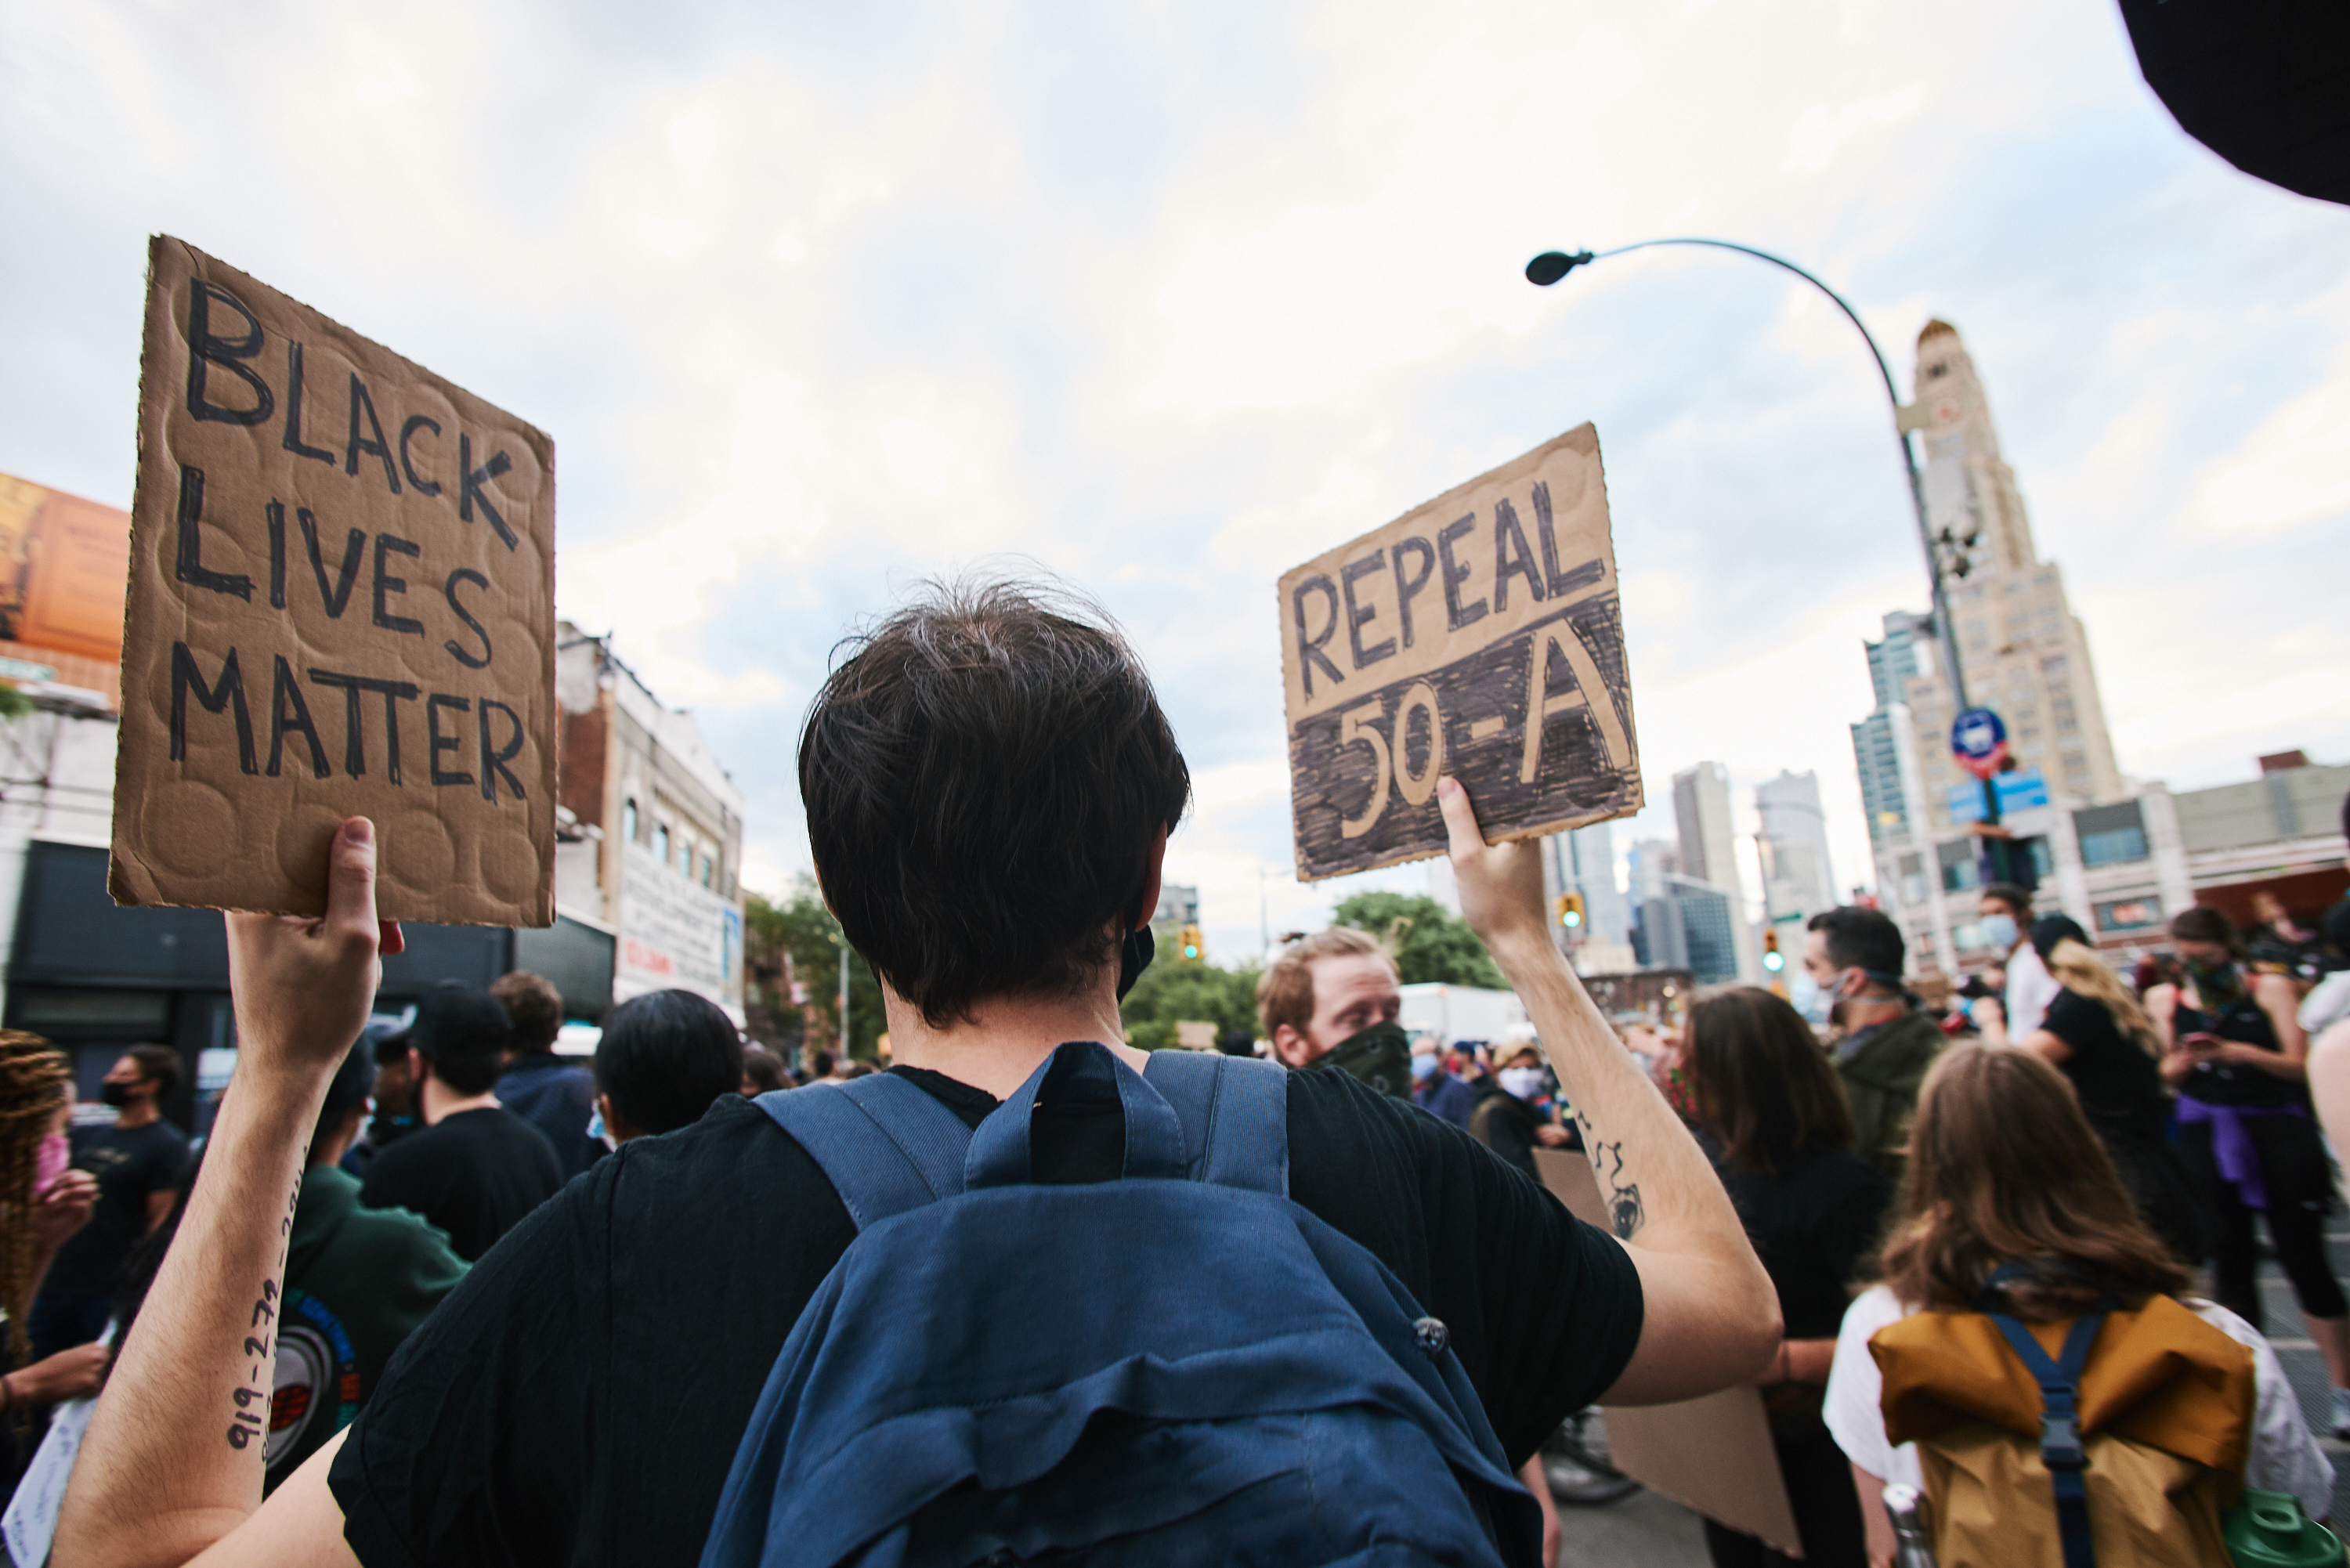 A protester calls for the repeal of a law shielding NYPD officer disciplinary records, June 2, 2020.